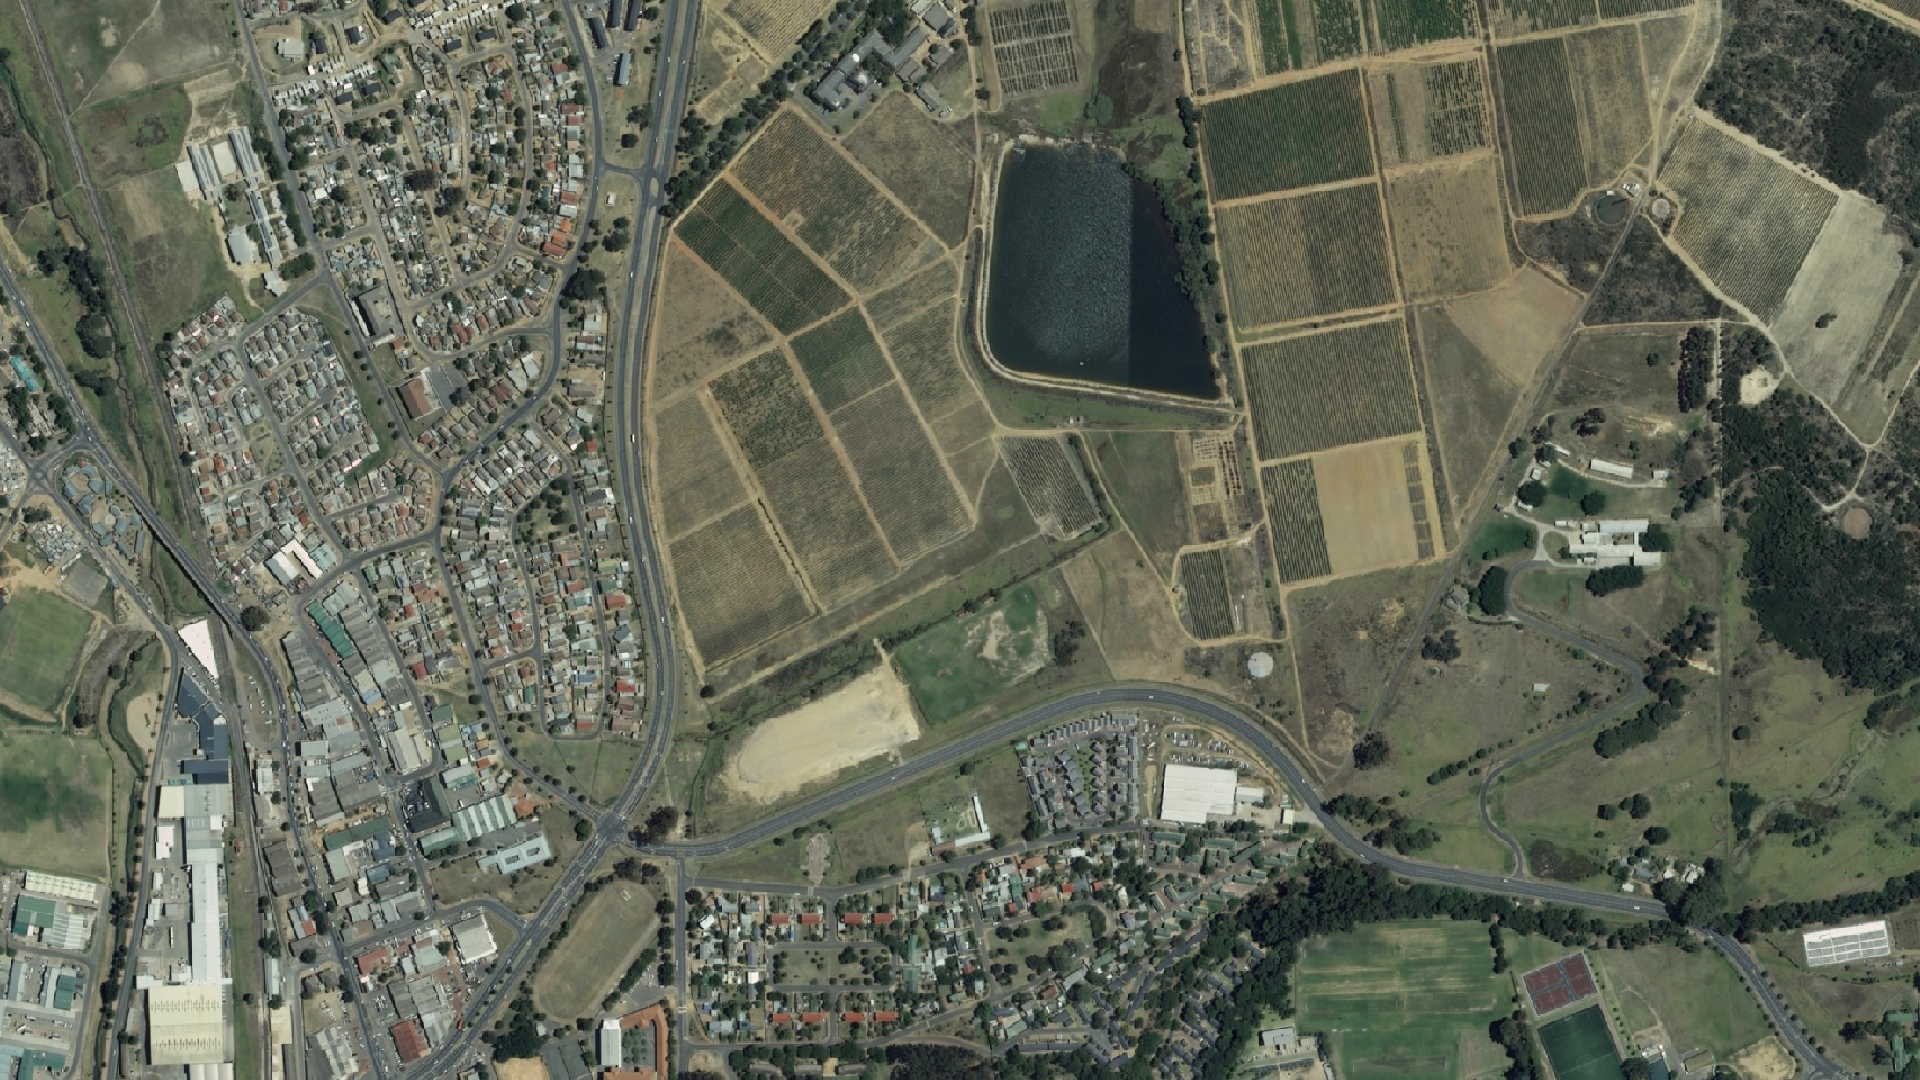 Orthorectified, 50 cm resolution RGB aerial image of example area.